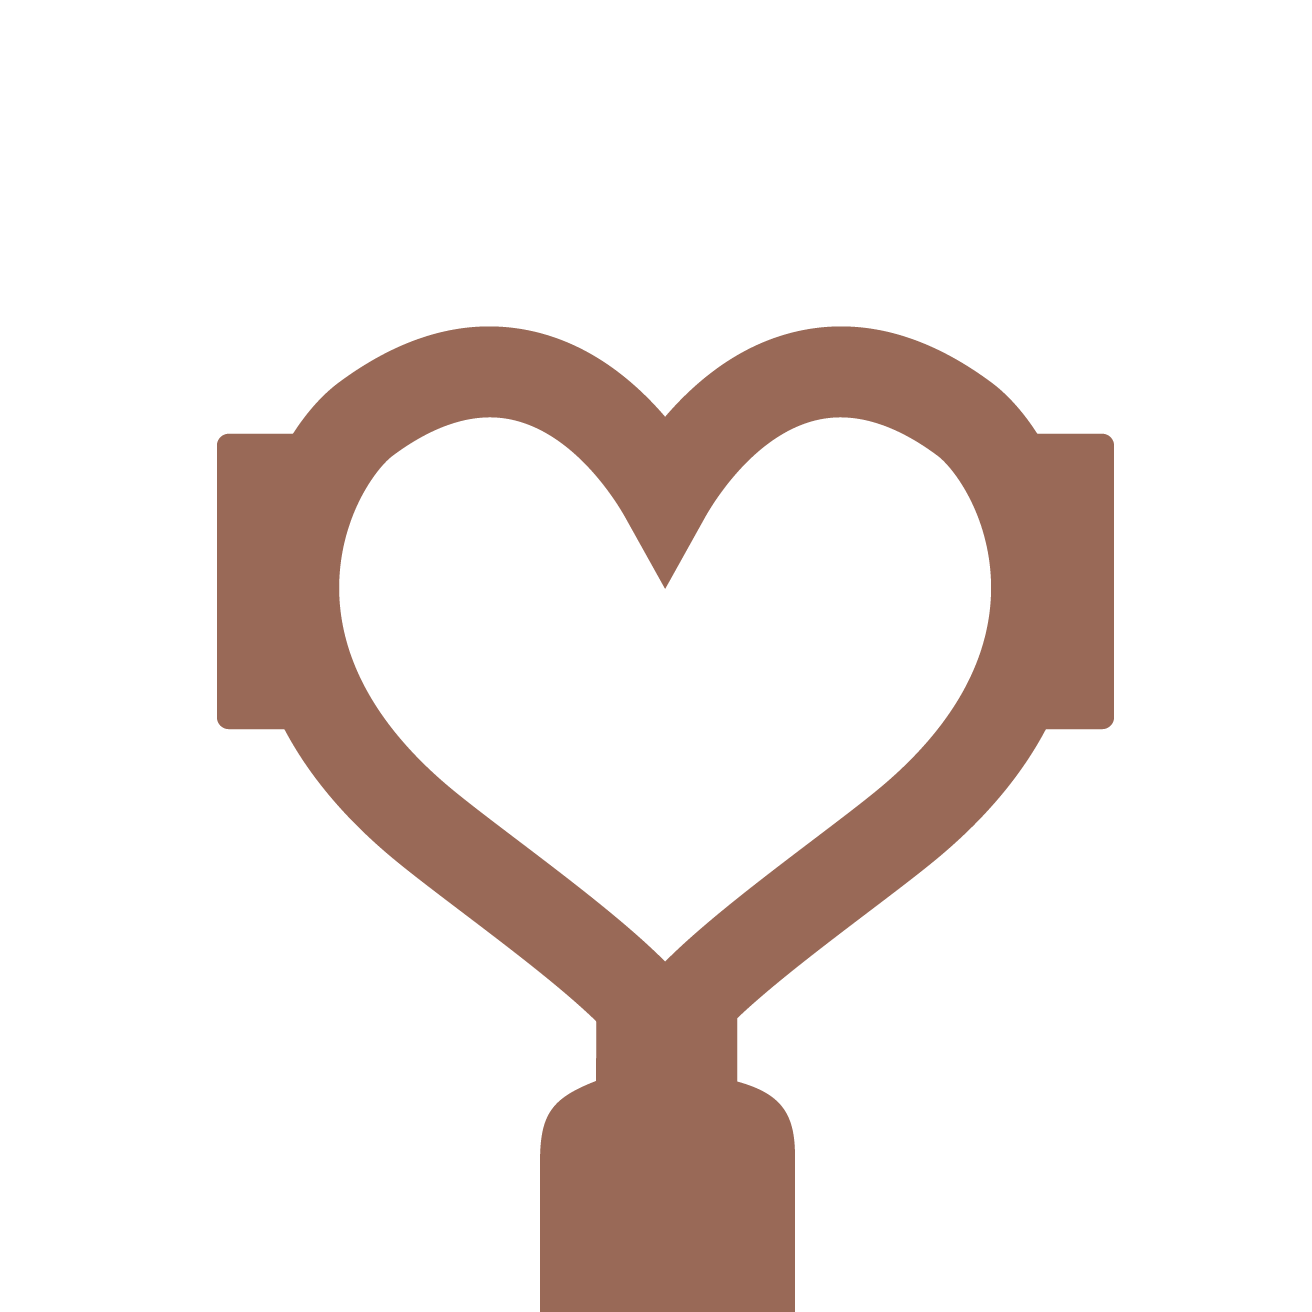 Moccamaster Technivorm KBG741 SELECT - Pink with FREE 250g bag of Coffee